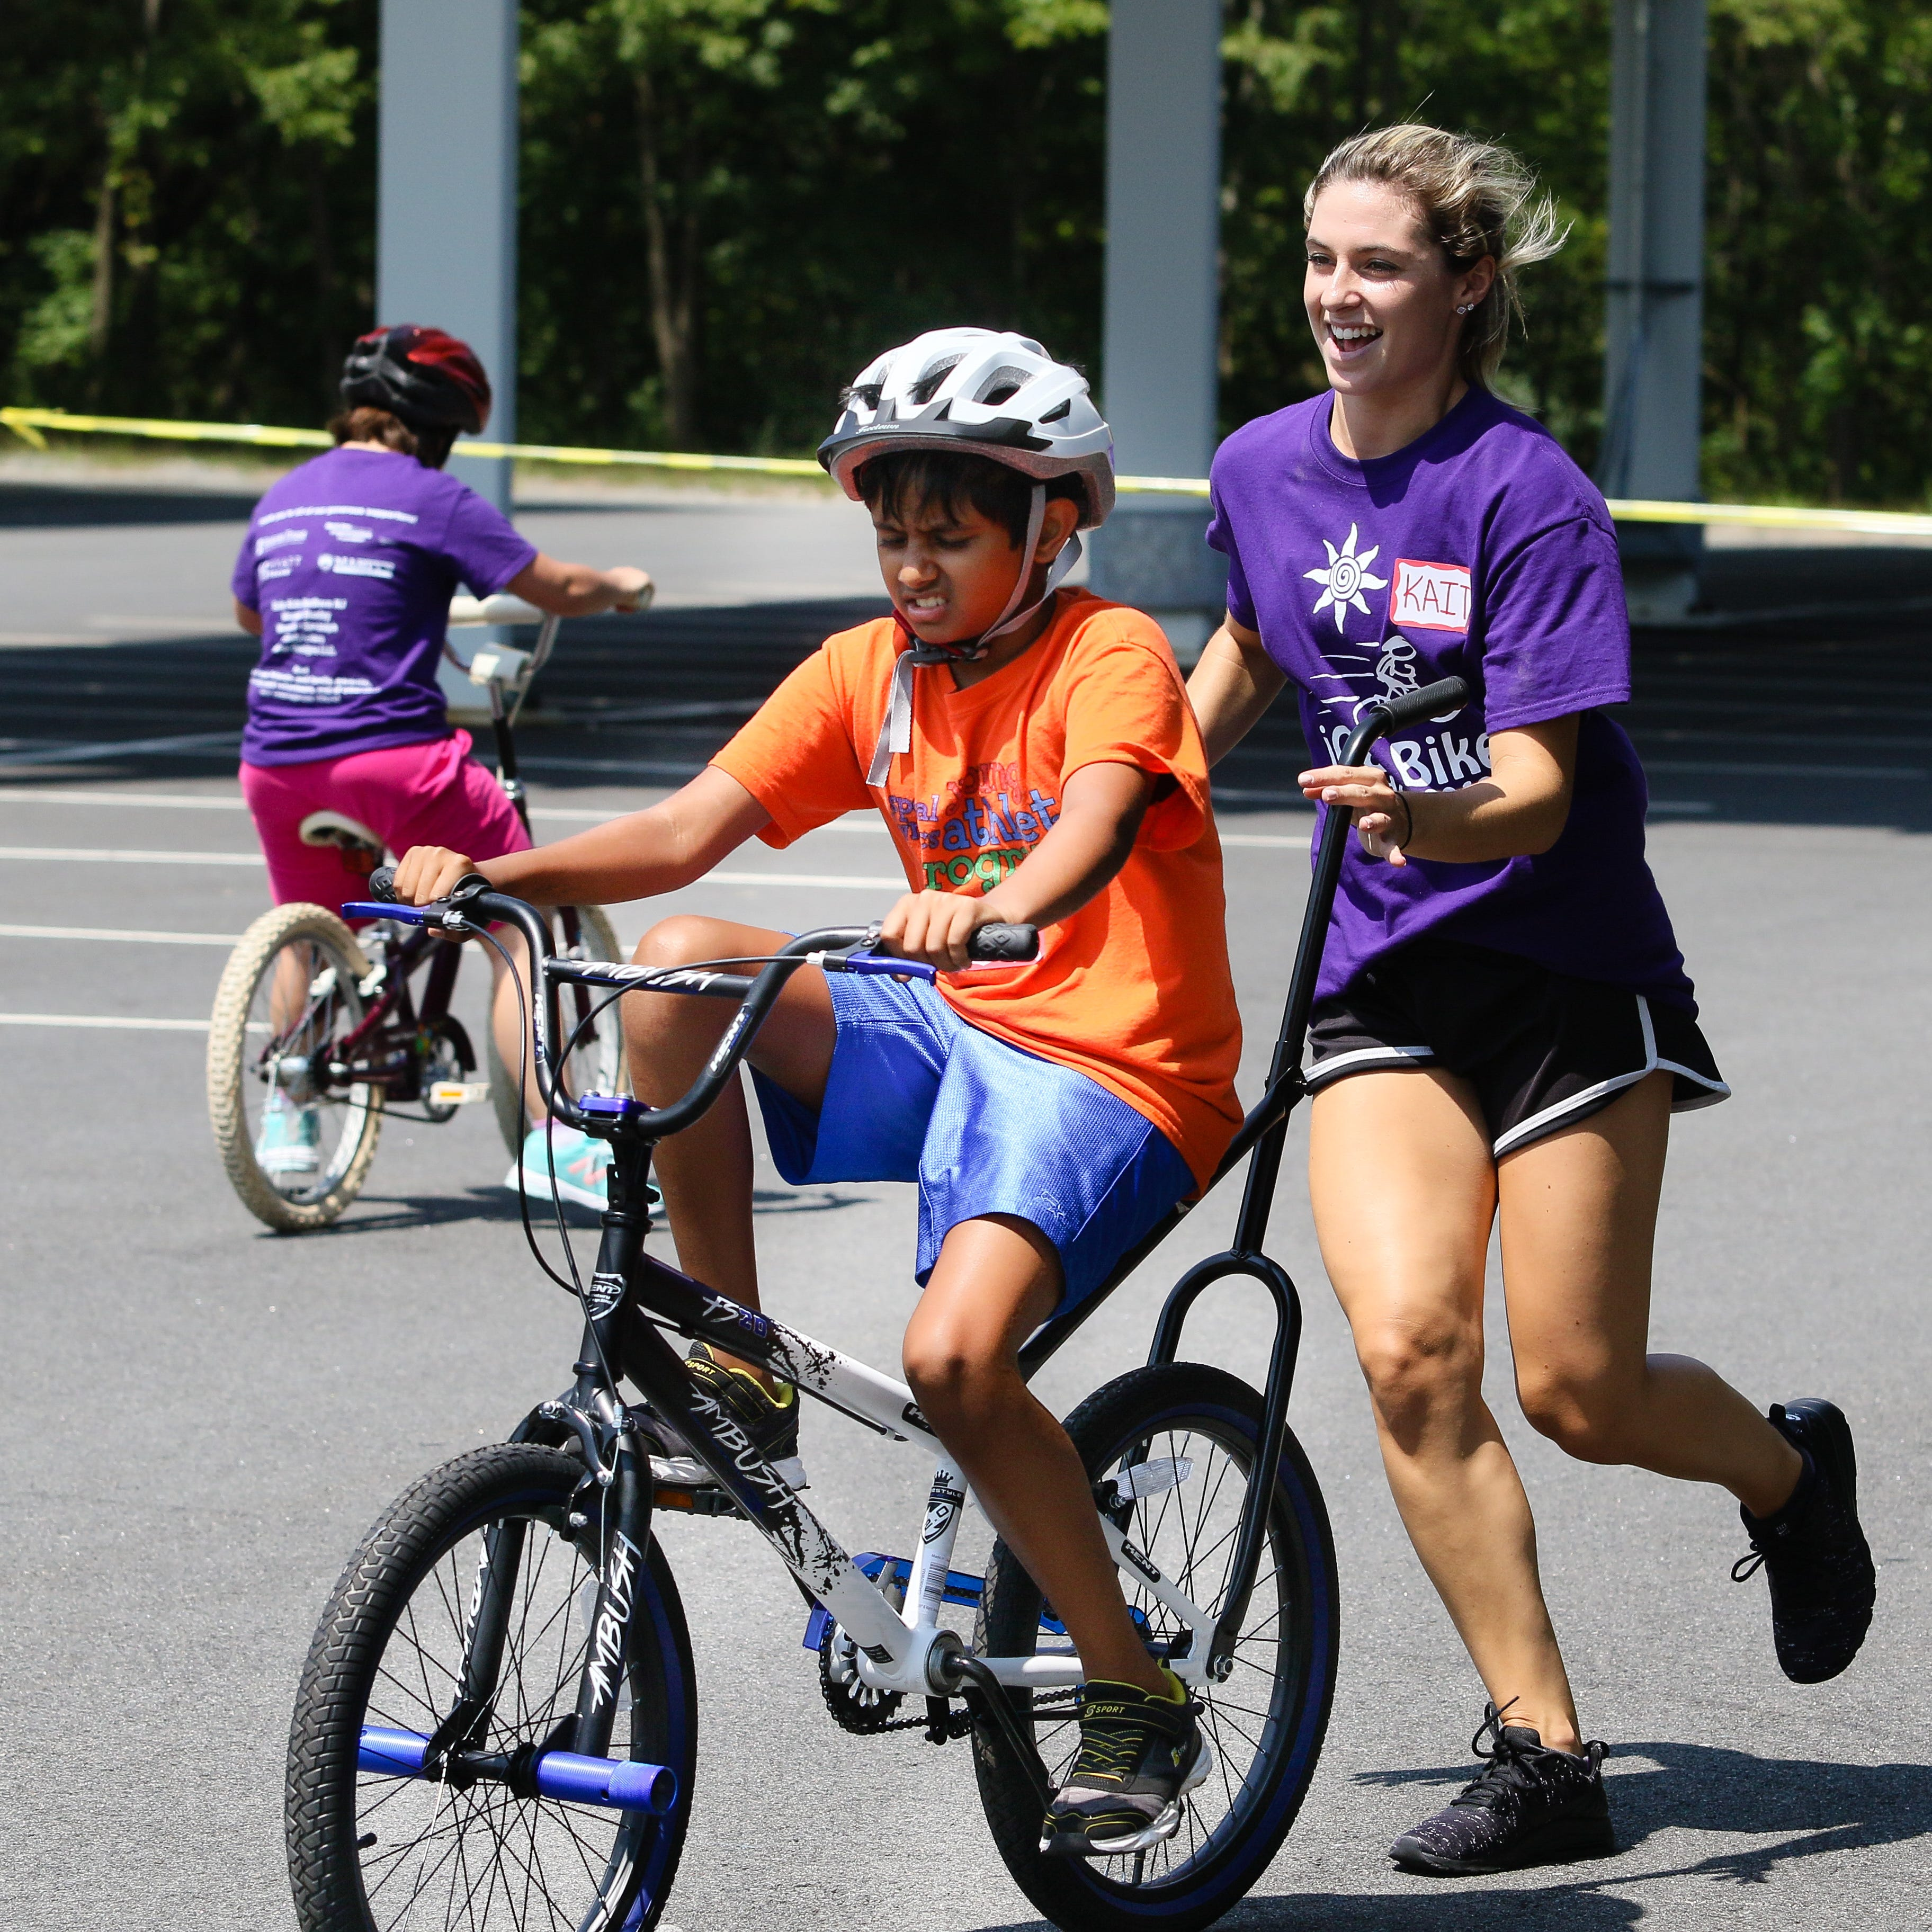 Confidence, achievement, mastery at iCan Bike Camp in Randolph